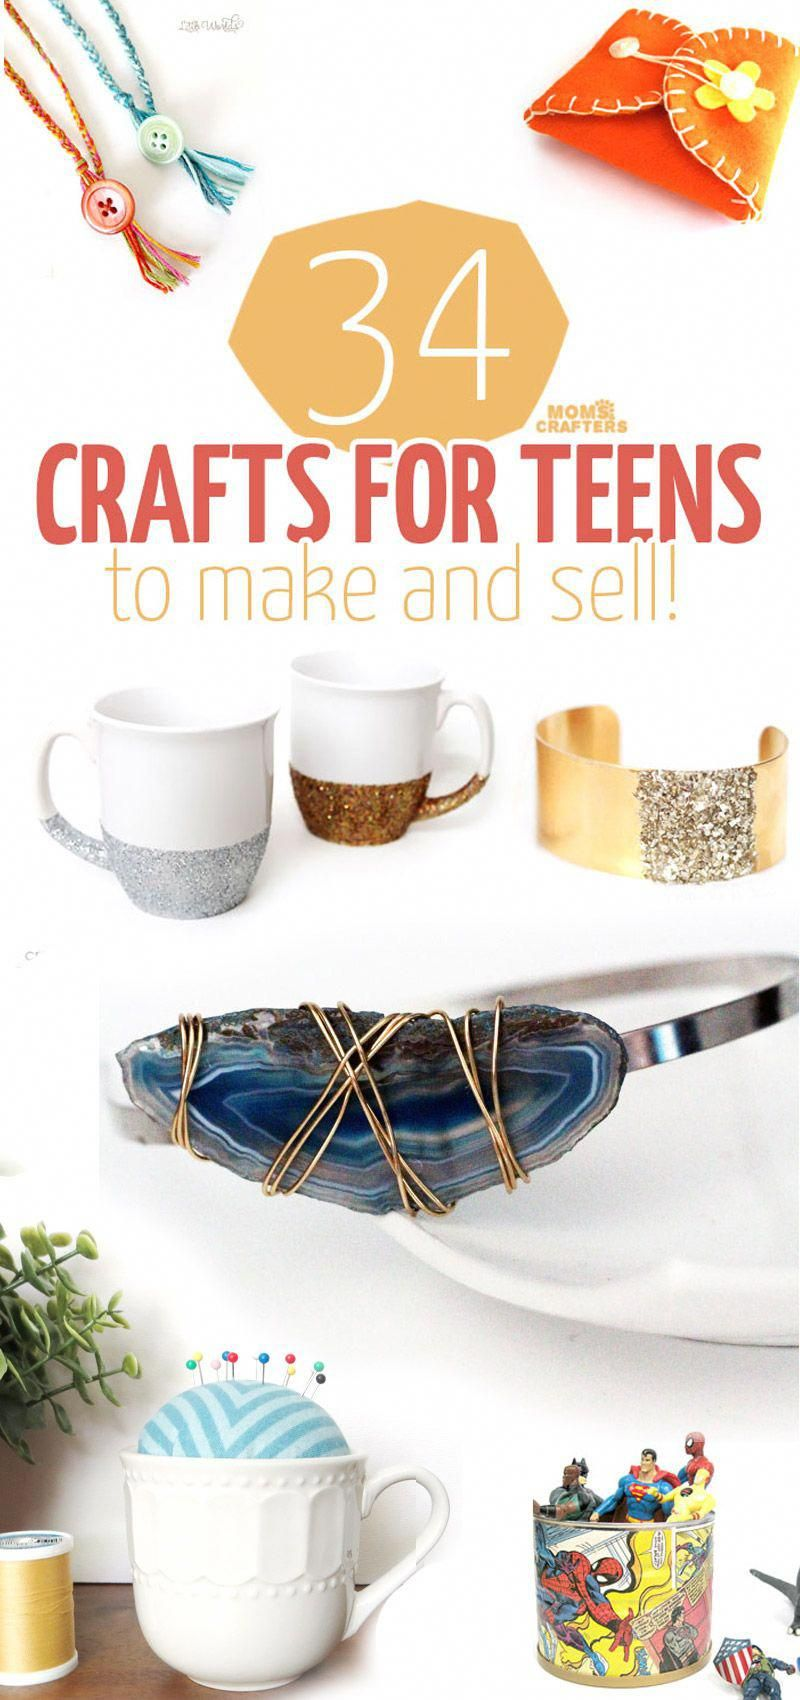 34 COOL crafts for teens to make and sell! #craftstomakeandsell